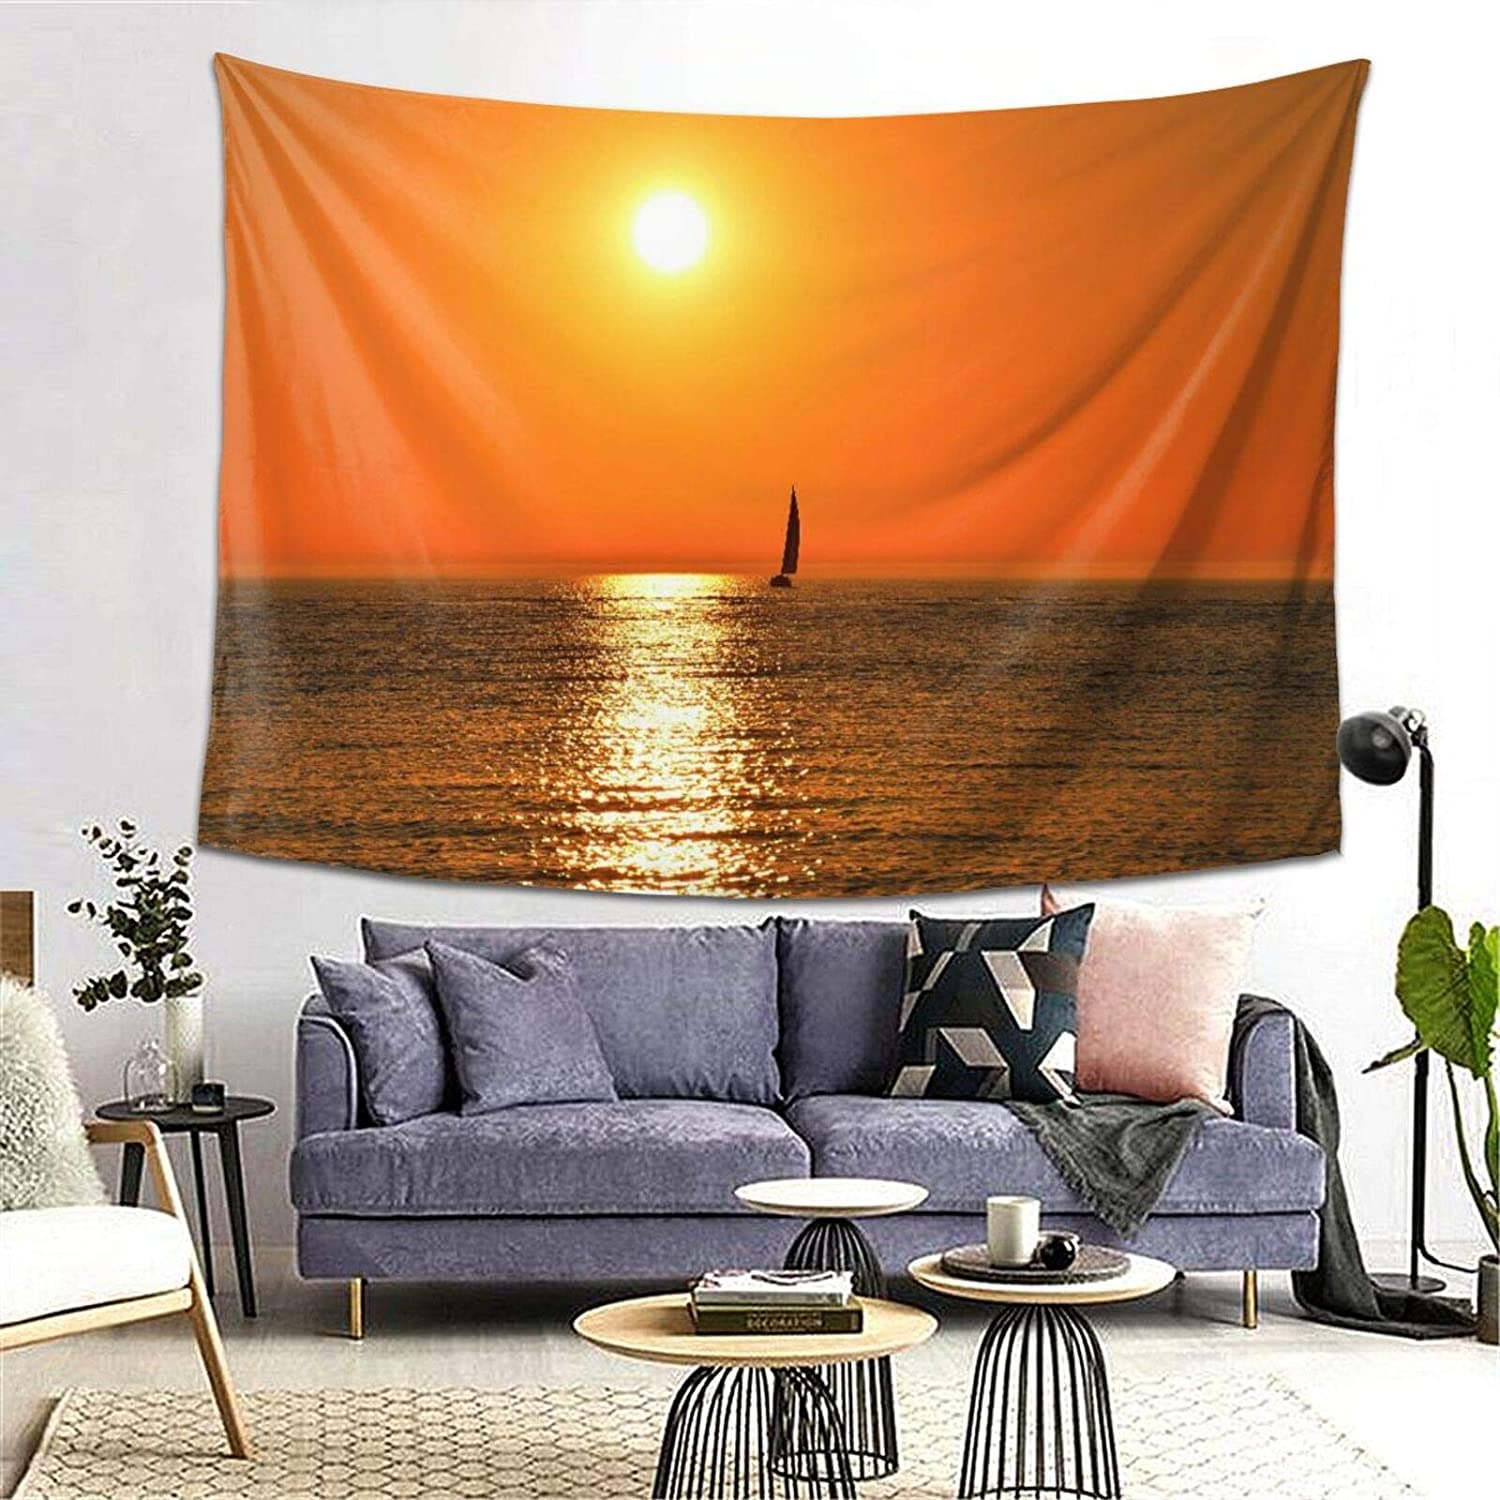 Personalized Tapestry for Room Wall Hanging Microfiber Thin Cloth,Small Yacht Sailboat On Lake Michigan at Sunset Nautical Serenity Maritime Culture,Covering Home Decor Indoor Outdoor,W80 x L60in